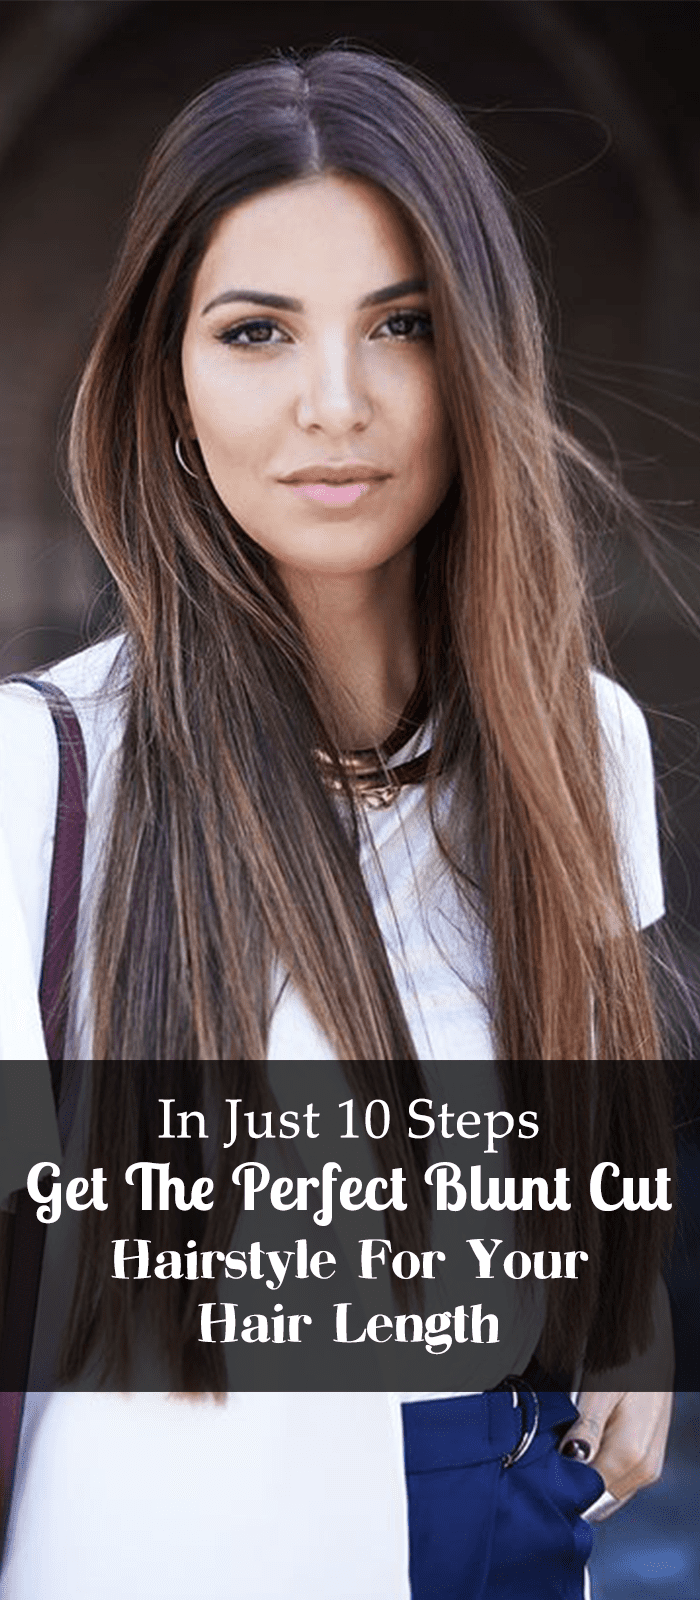 In Just 10 Steps Get The Perfect Blunt Cut Hairstyle For Your Hair Length